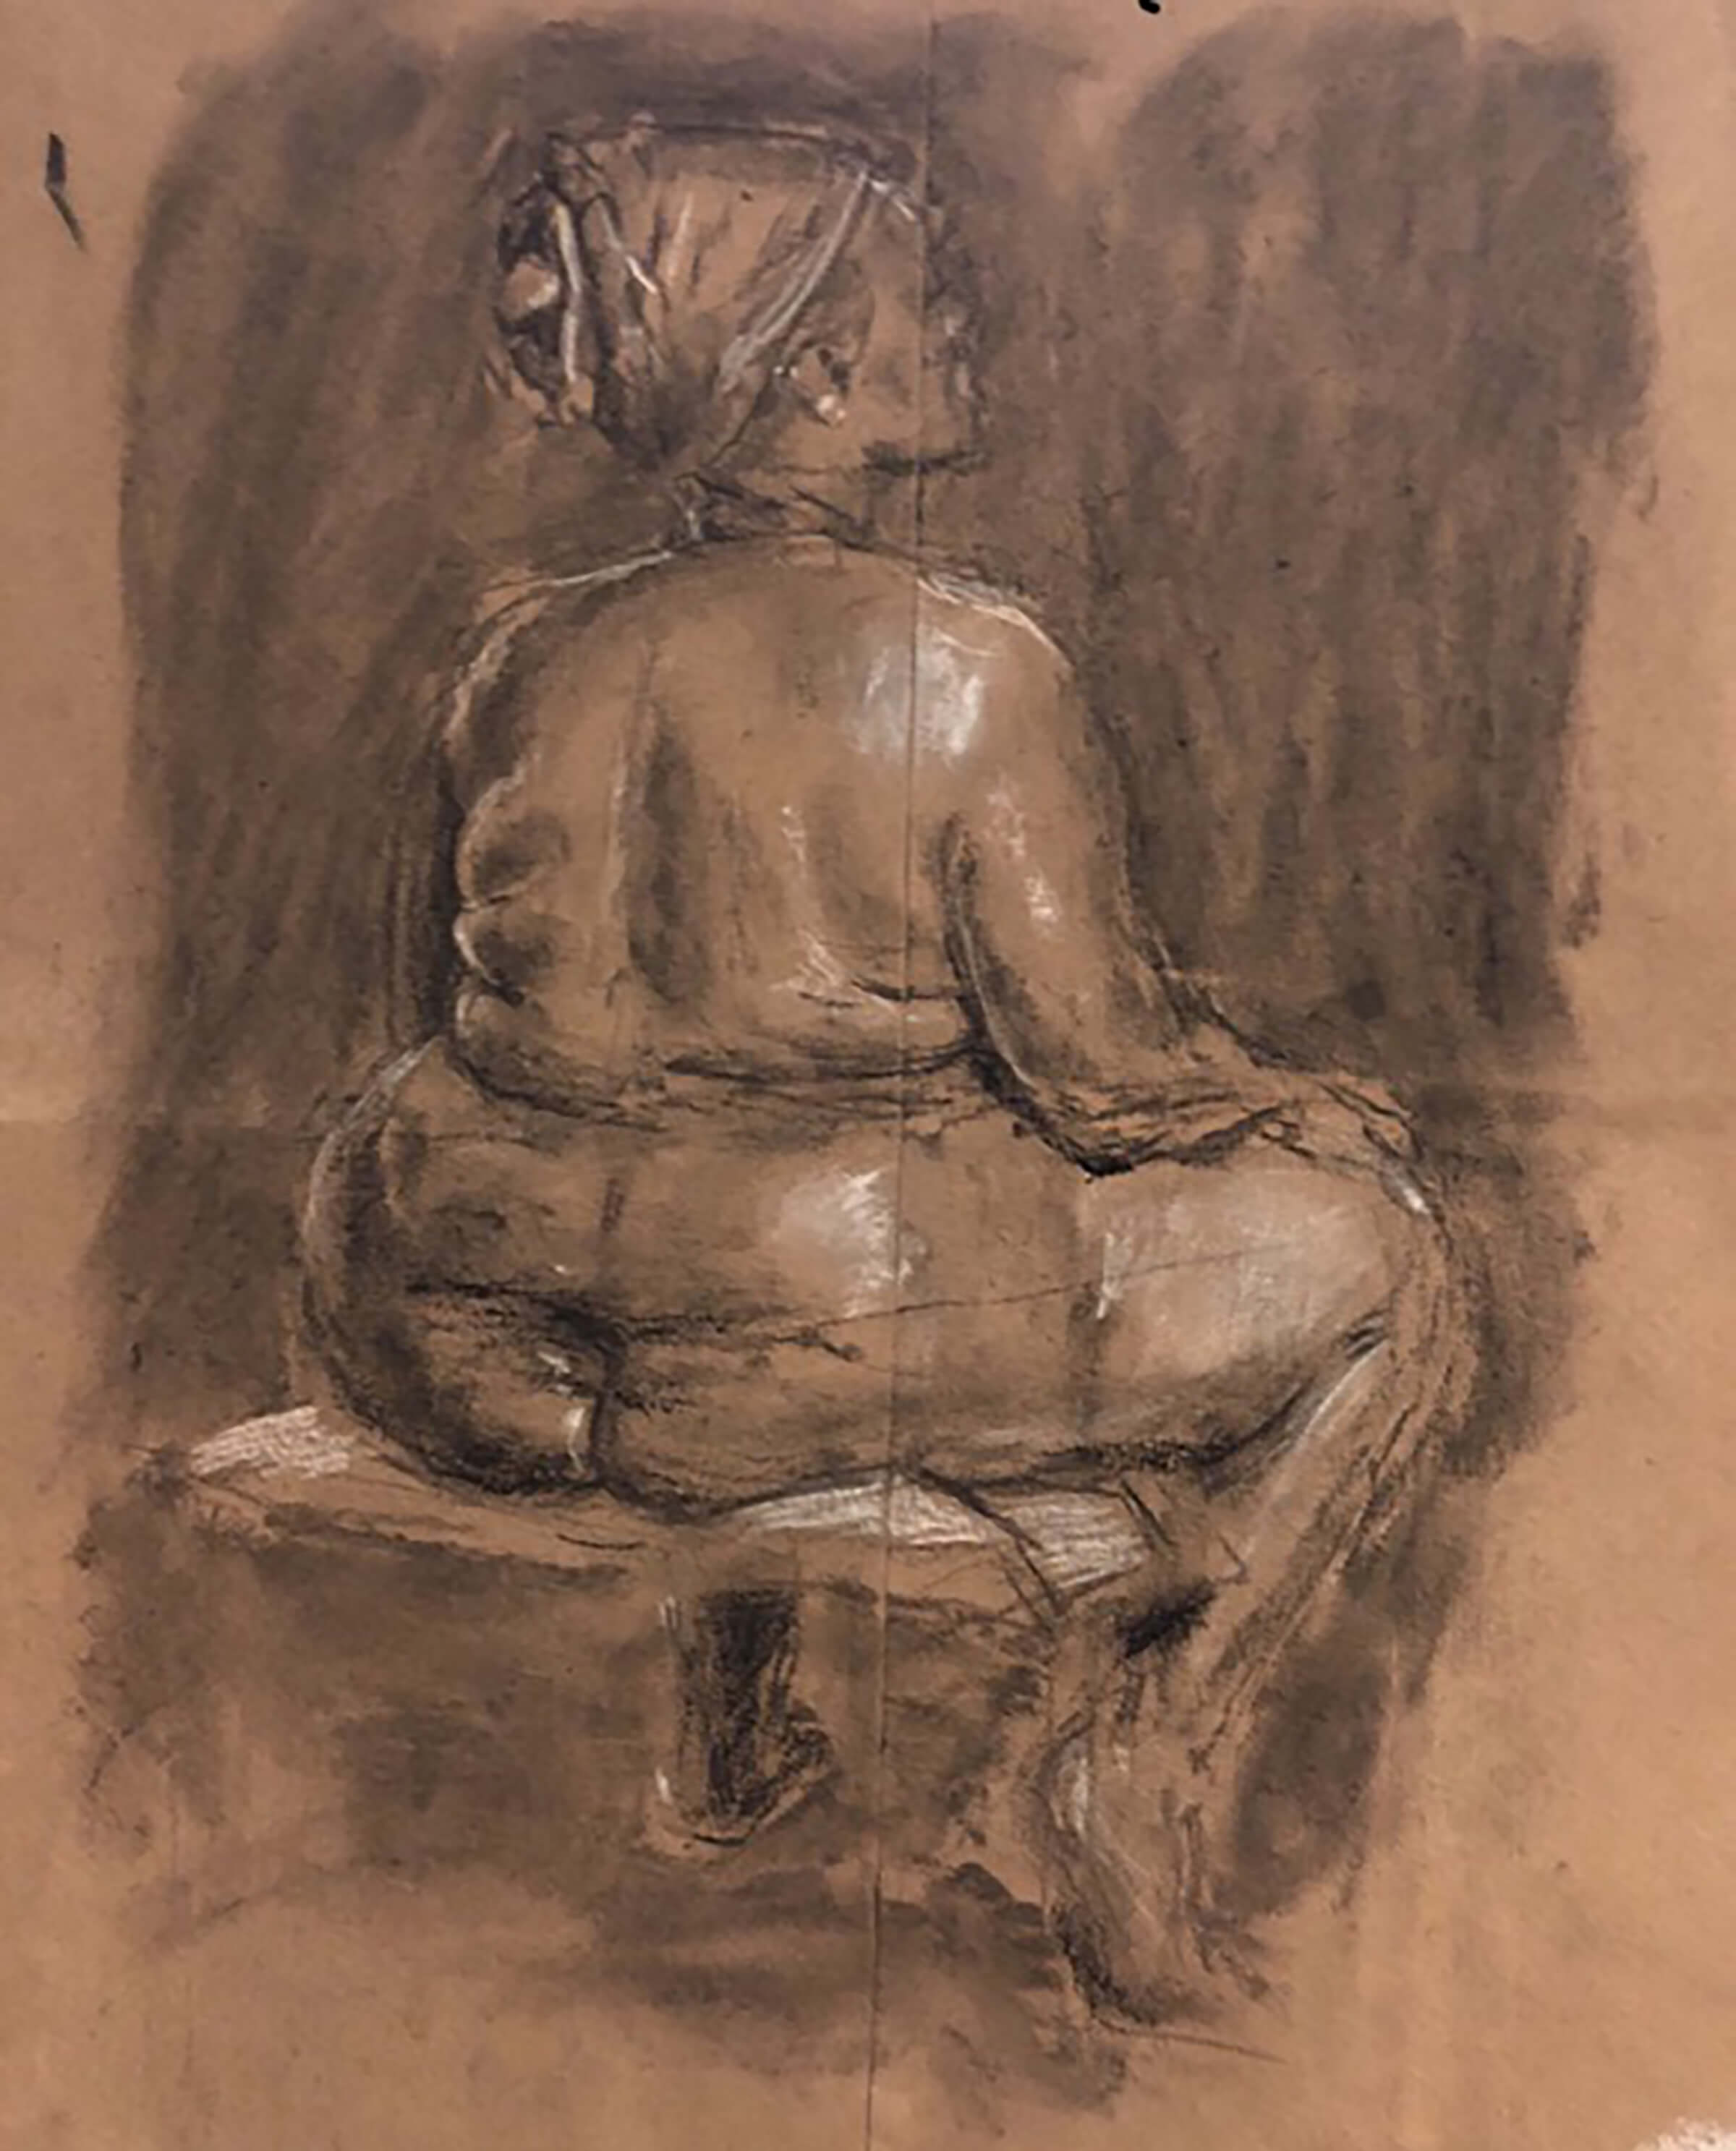 Drawing of a woman, hands on knees, sitting with her back to the artist